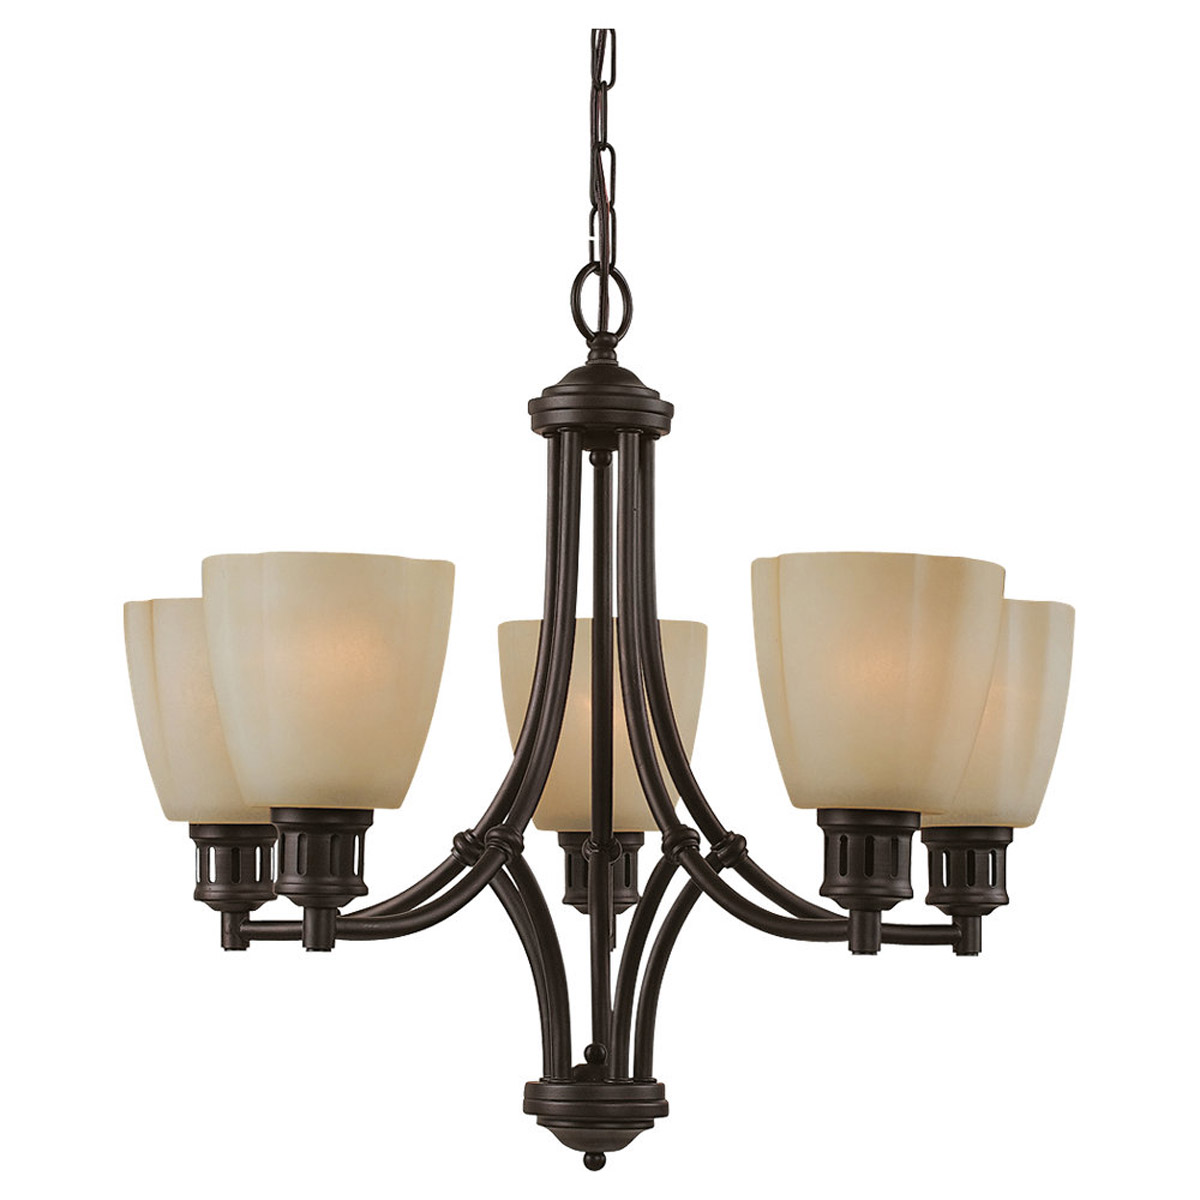 Sea Gull Lighting Century 5 Light Chandelier in Heirloom Bronze 31475-782 photo